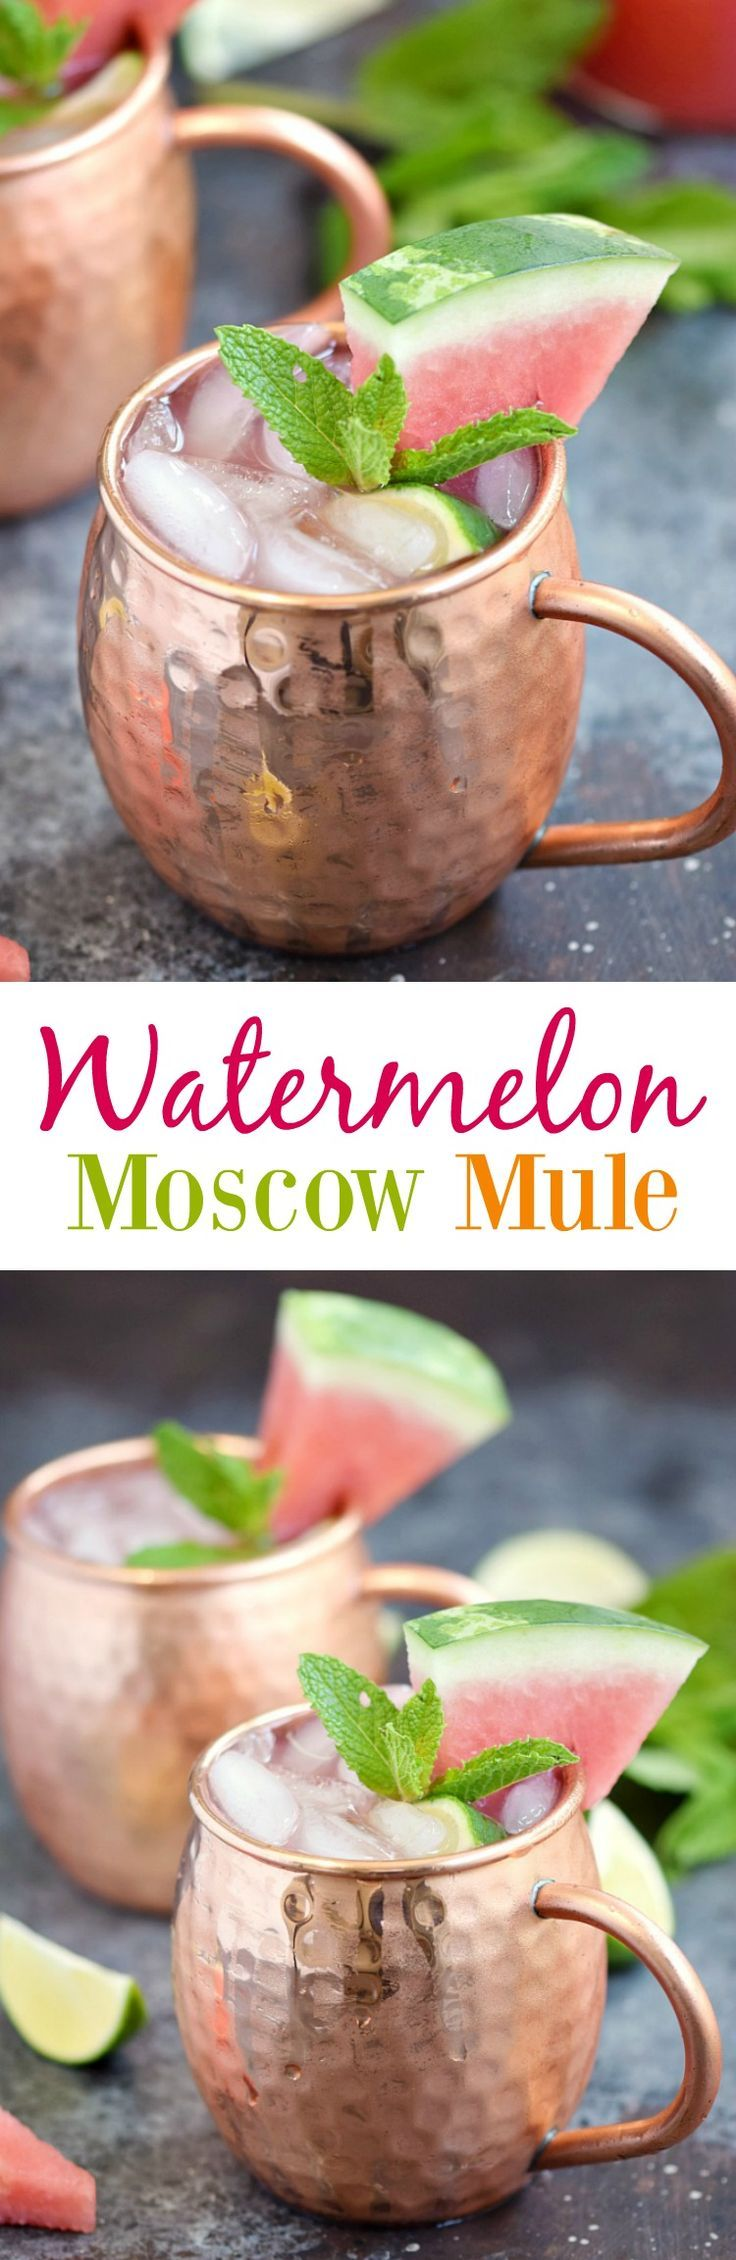 This Watermelon Moscow Mule is the perfect light and refreshing cocktail to enjoy on those hot summer nights! http://cookingwithcurls.com